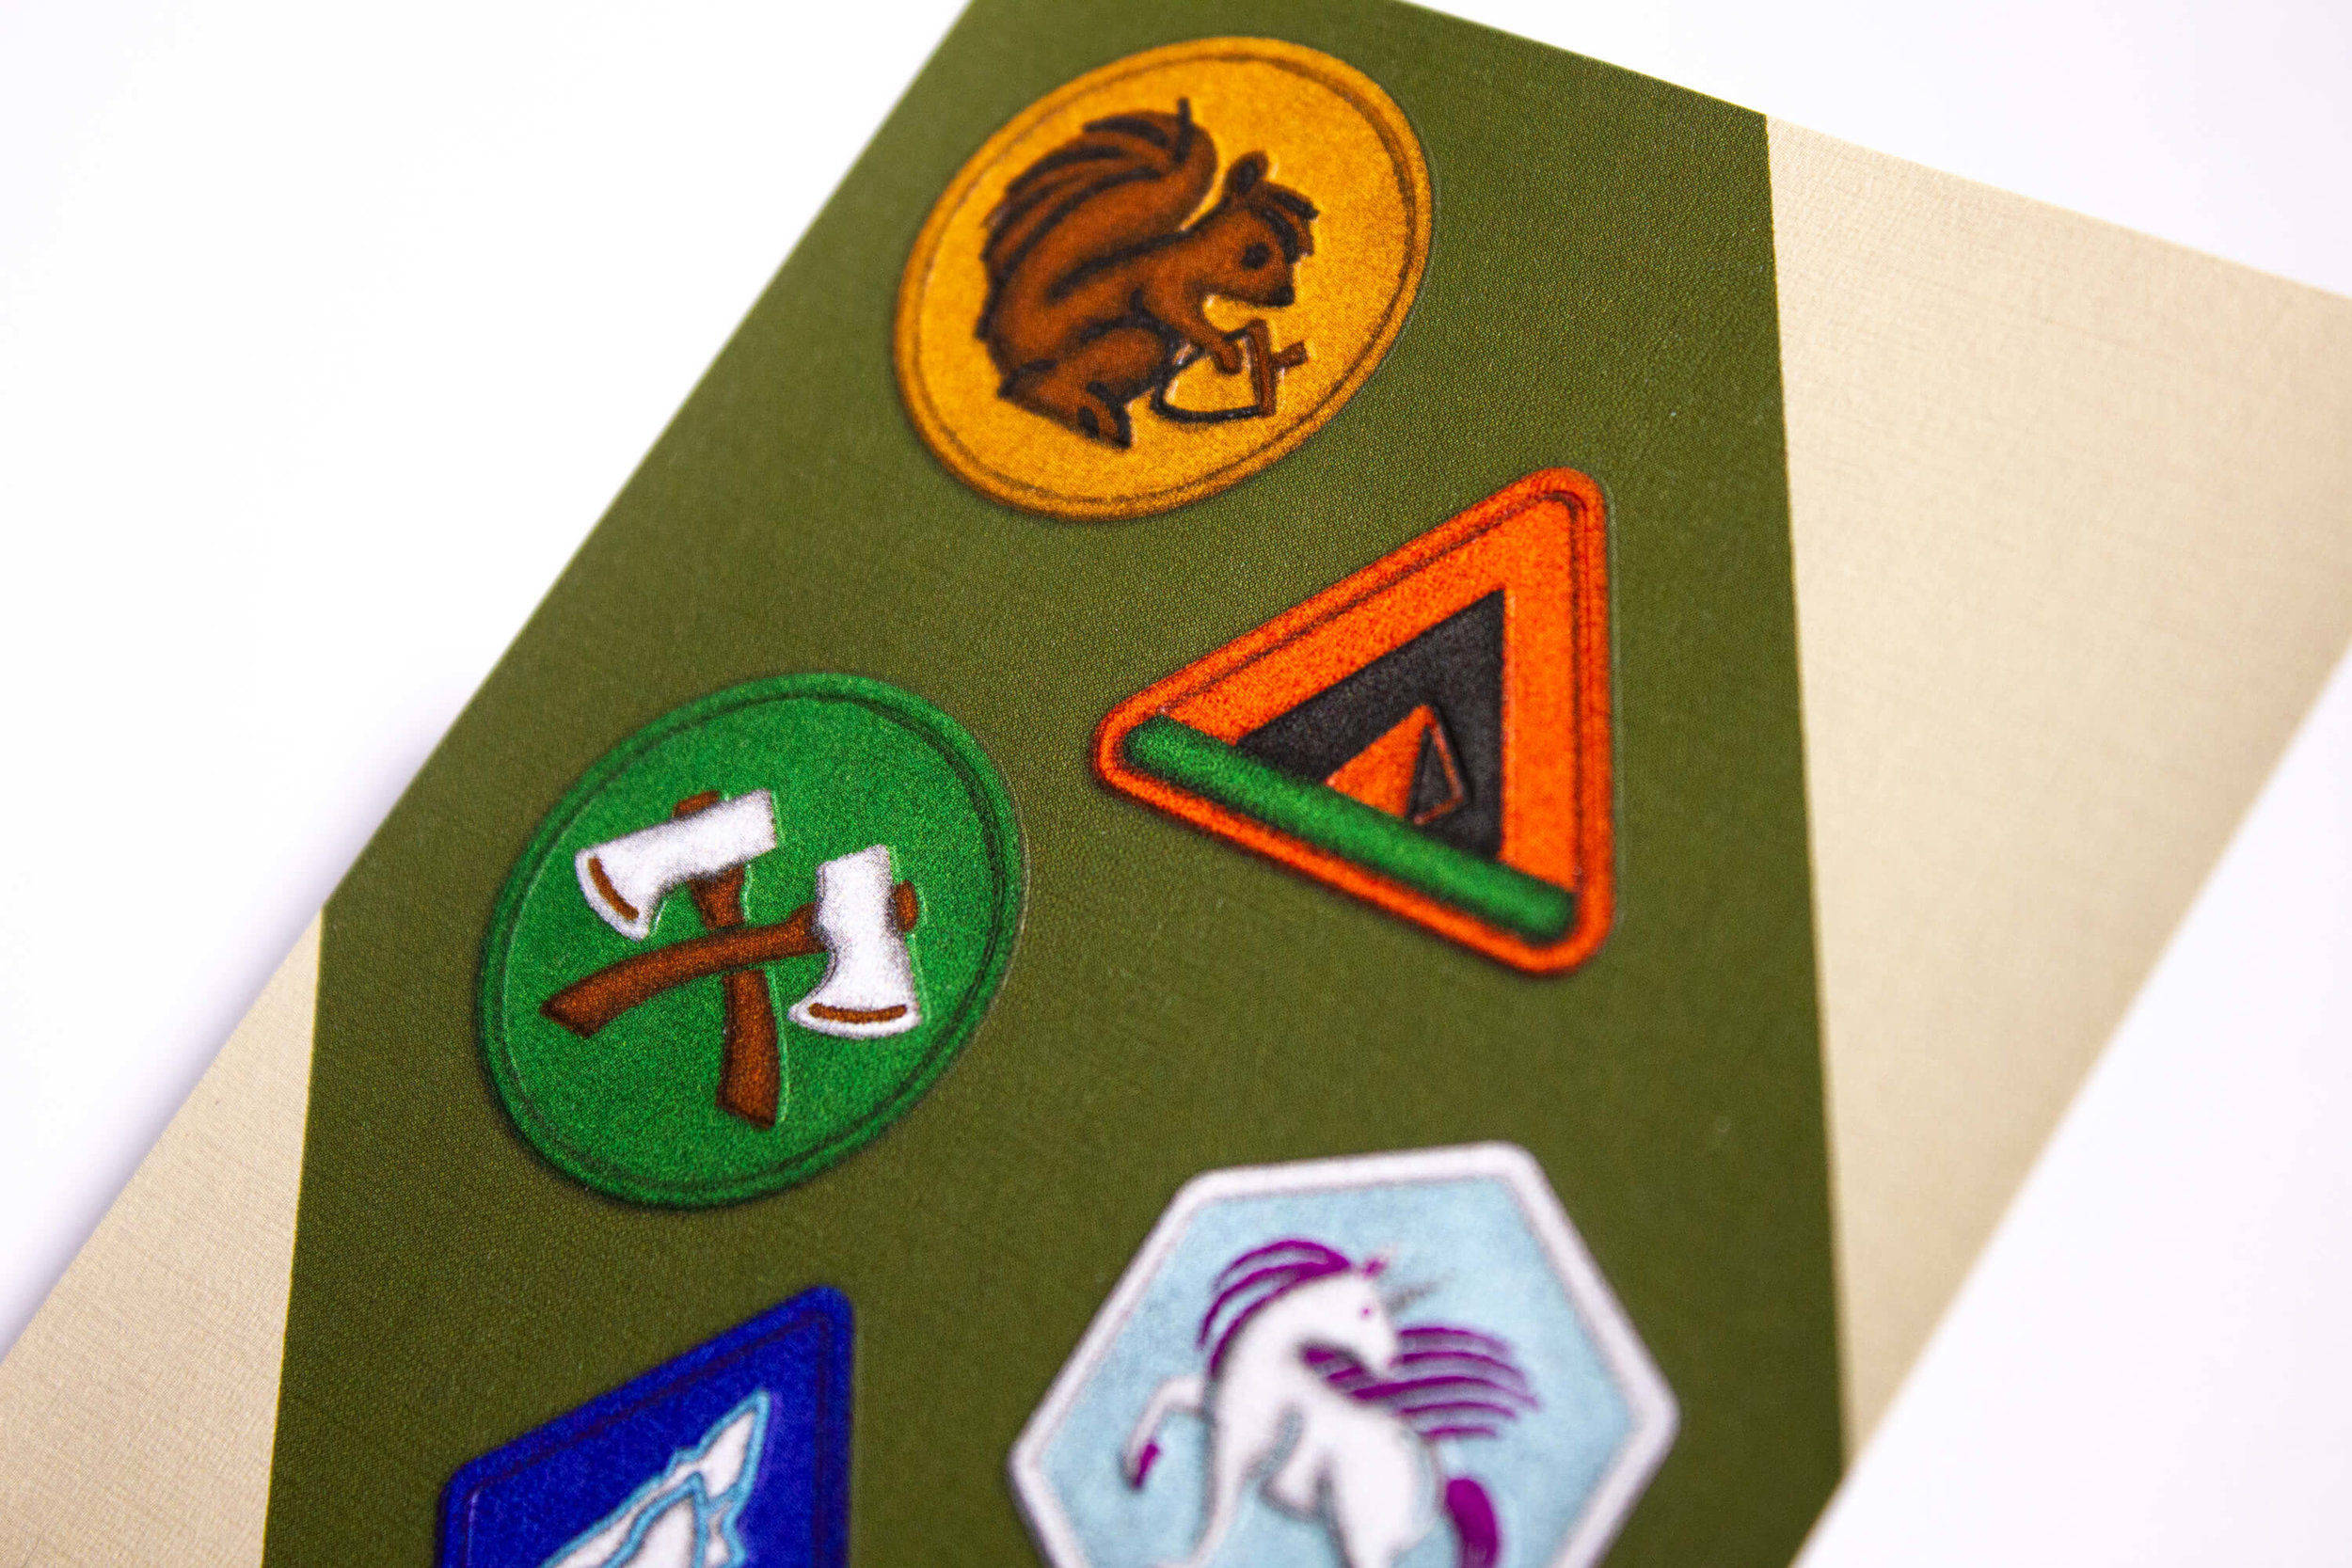 remo-remo-design-bld-badges.jpg